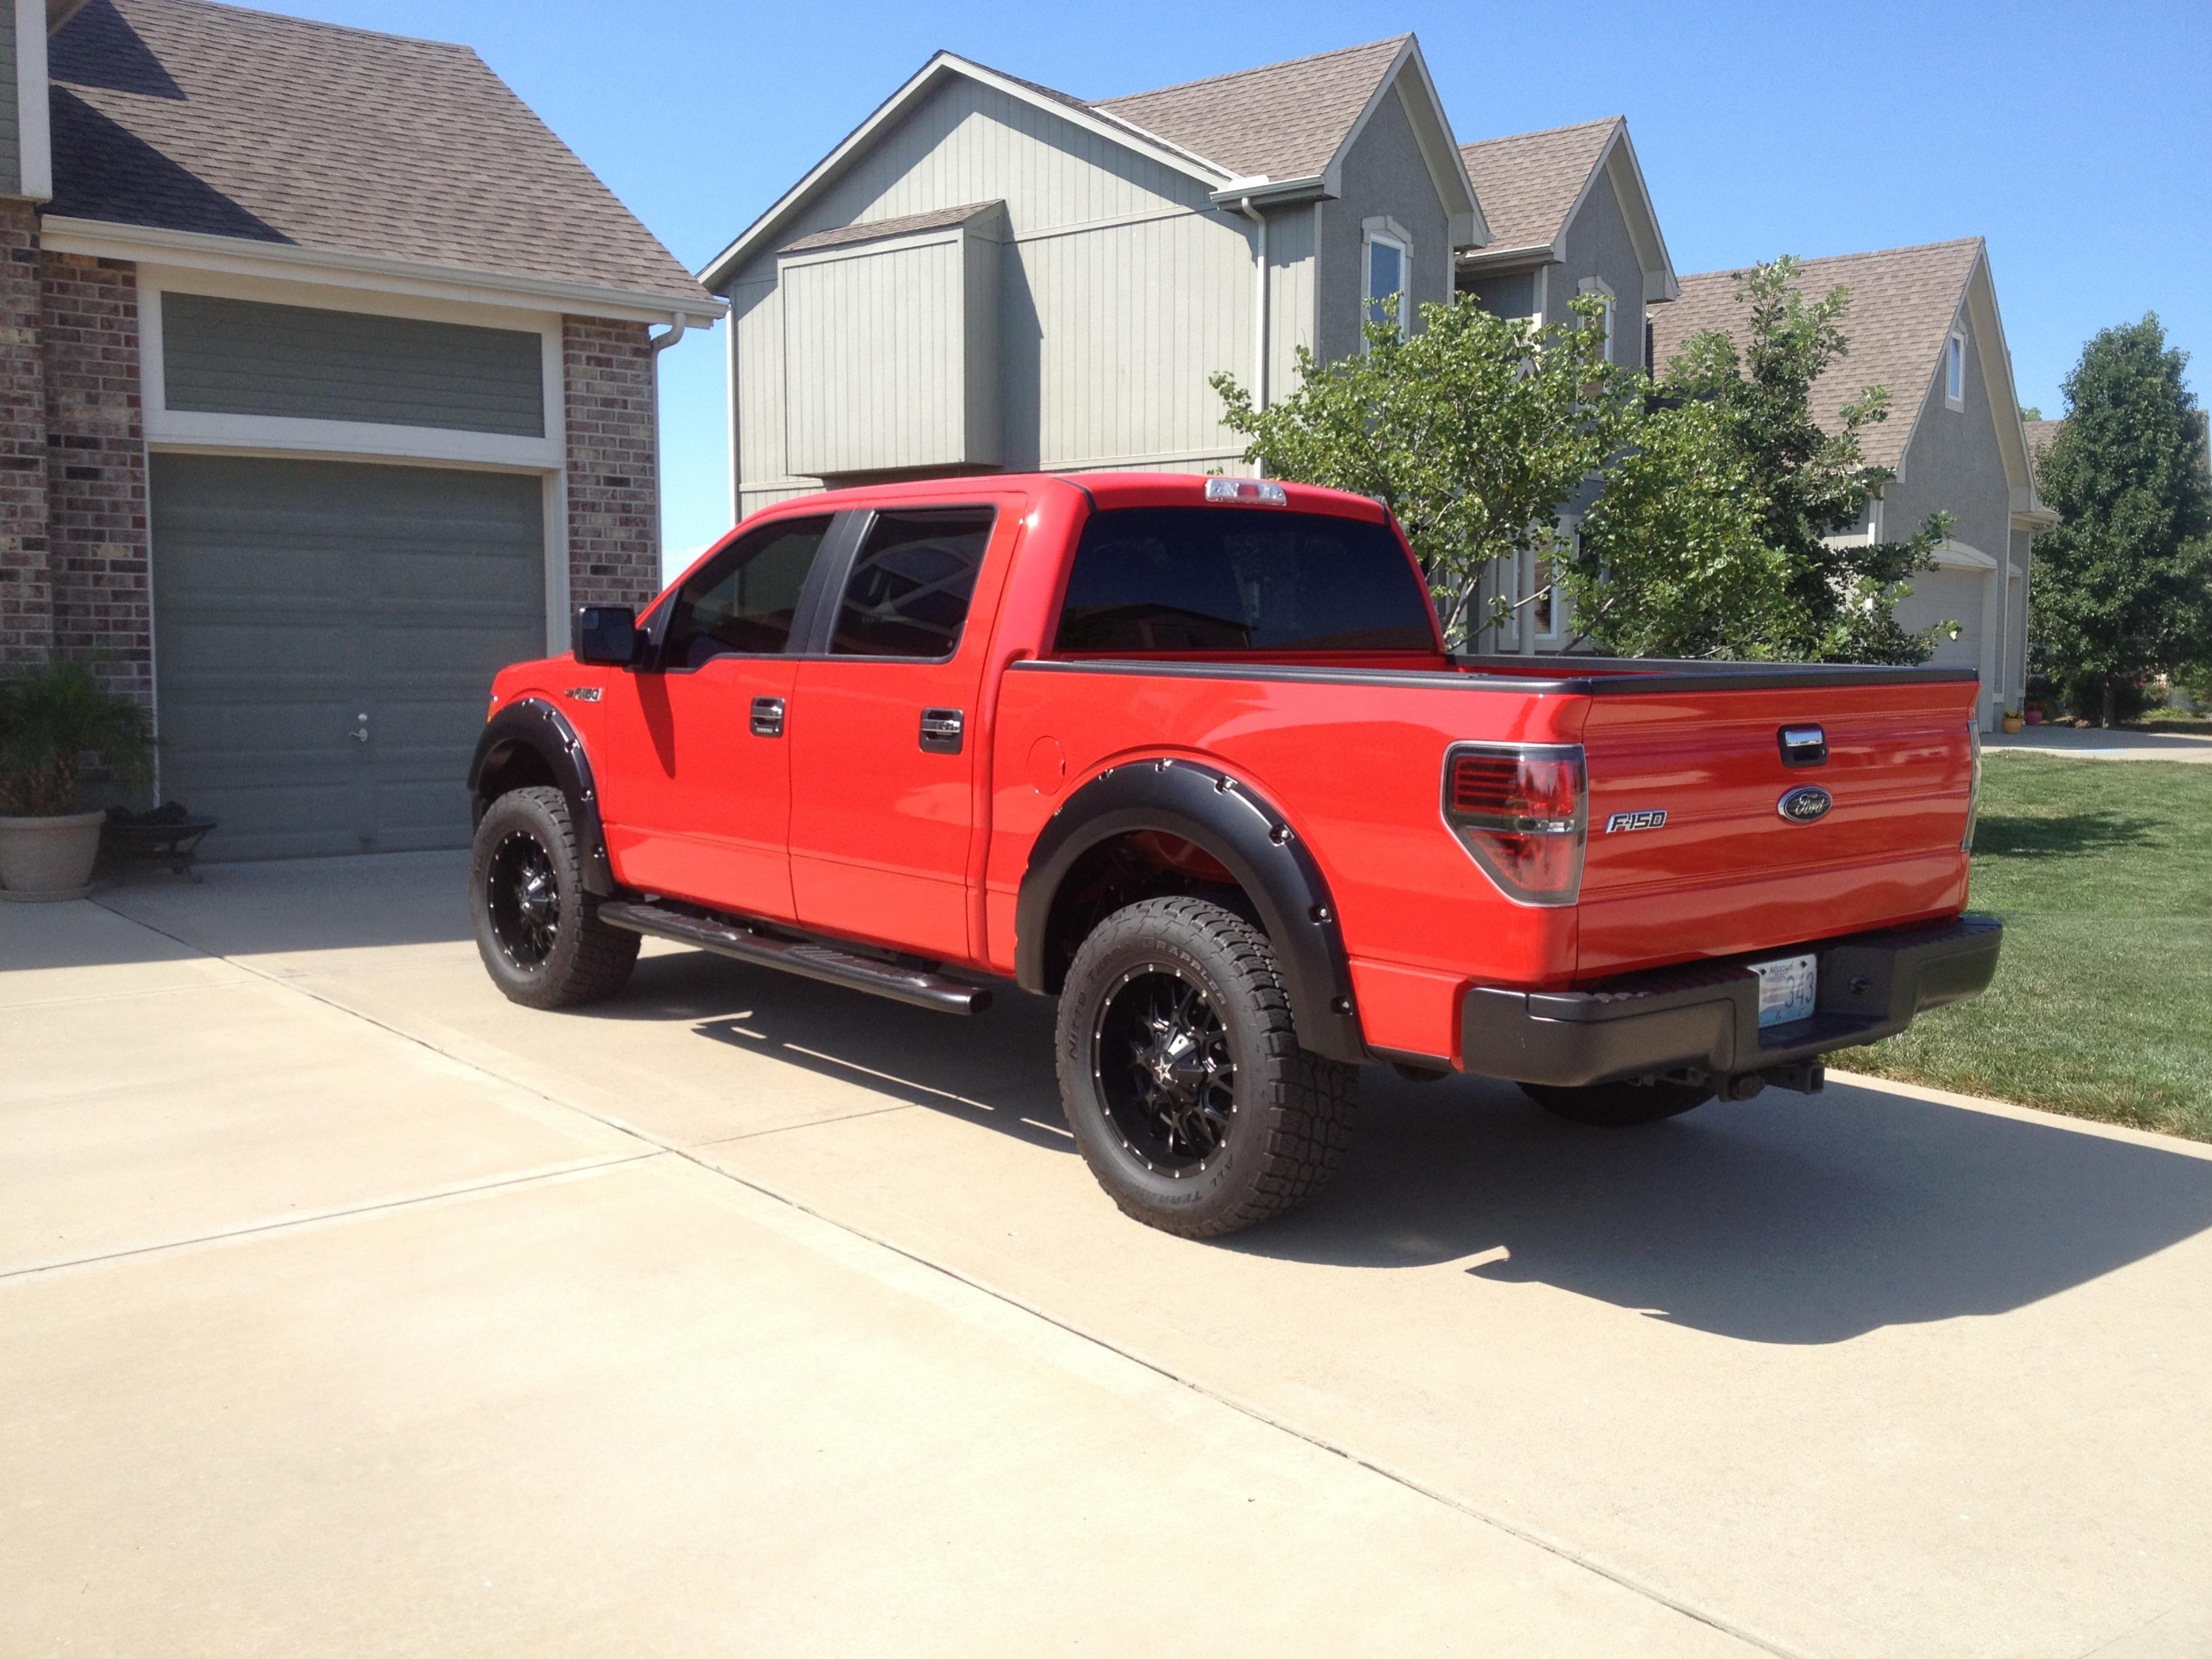 3 Inch Leveling Kit F150 Best Car Update 2019 2020 By Thestellarcafe